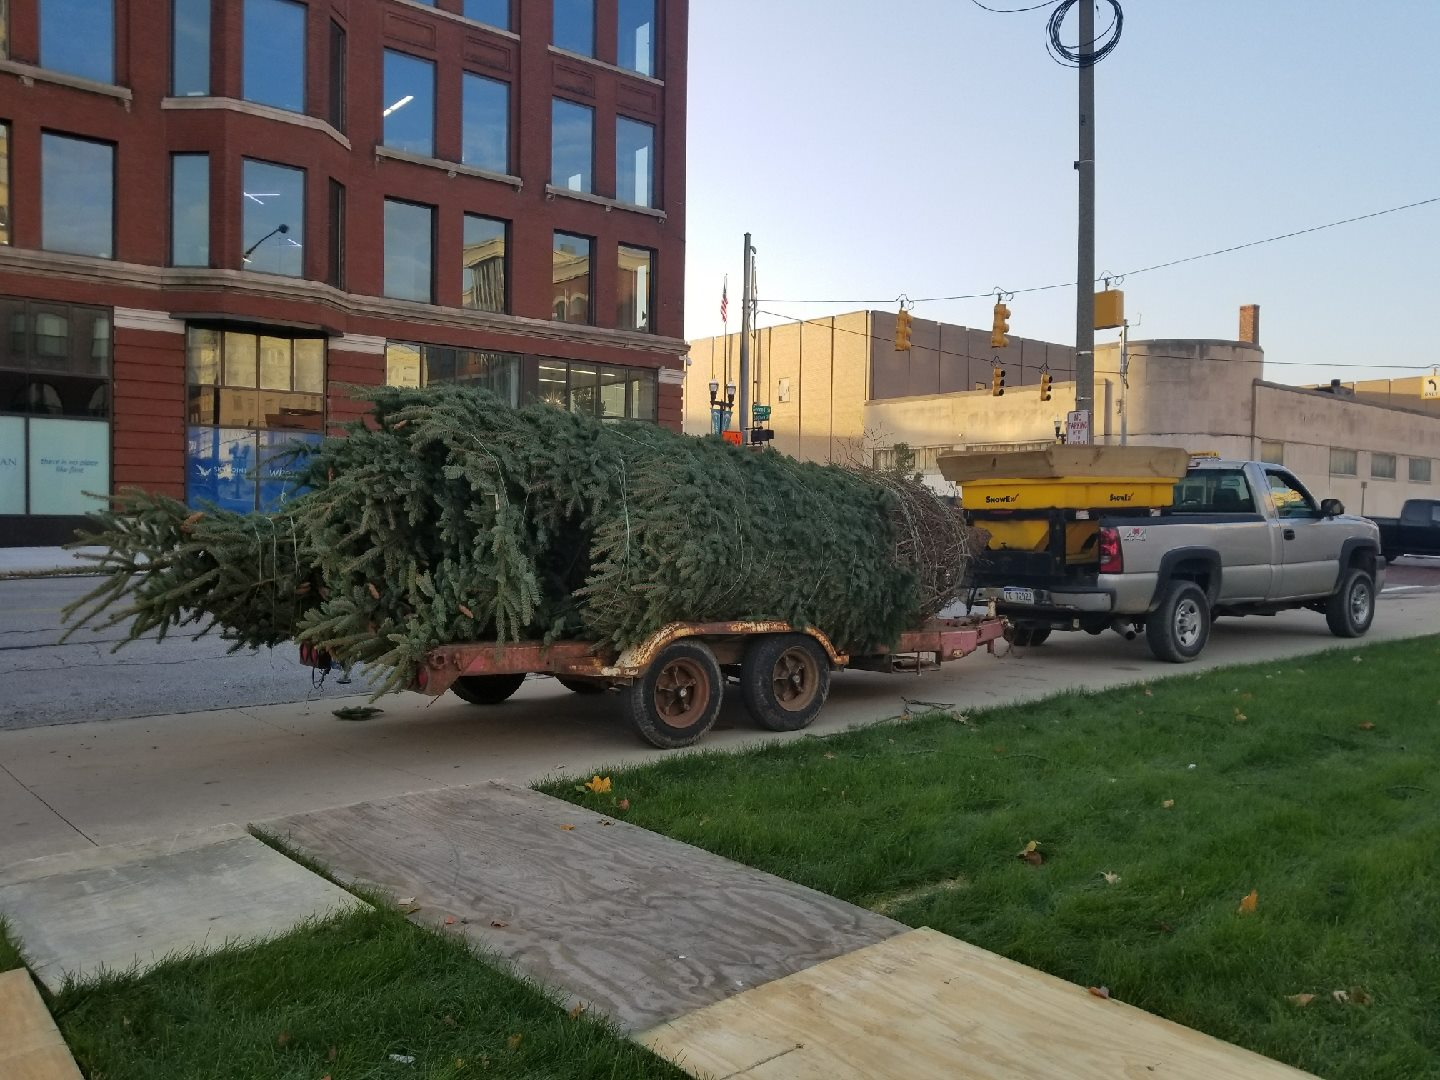 The tree lighting will start a 6 p.m. on Thursday evening in downtown Flint on Saginaw Street. (Photo: Uptown Reinvestment Facebook page){&amp;nbsp;}<p></p>